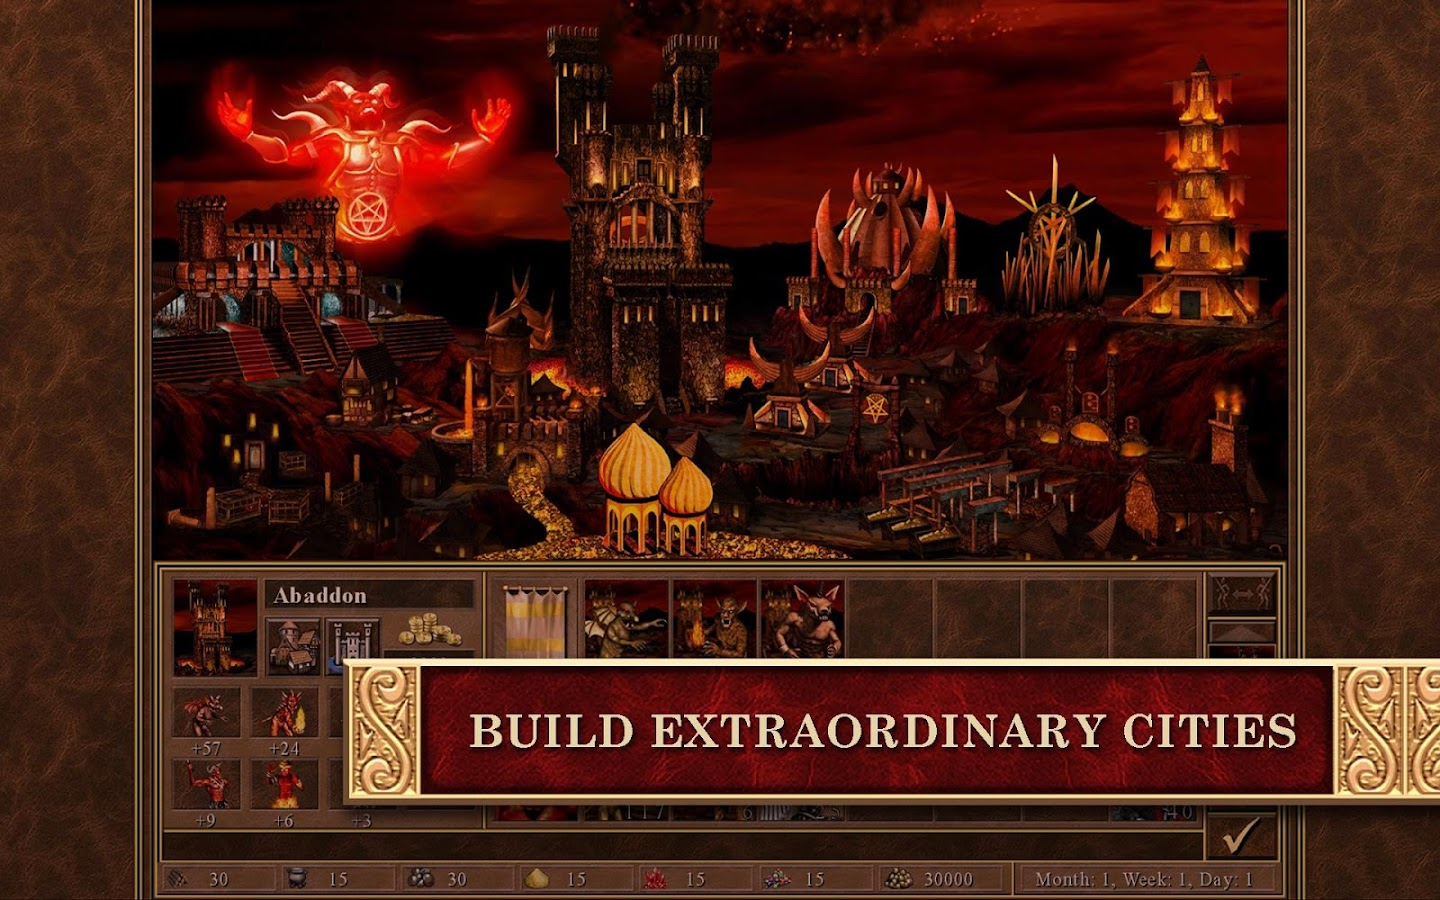 Heroes of Might & Magic III HD Screenshot 14